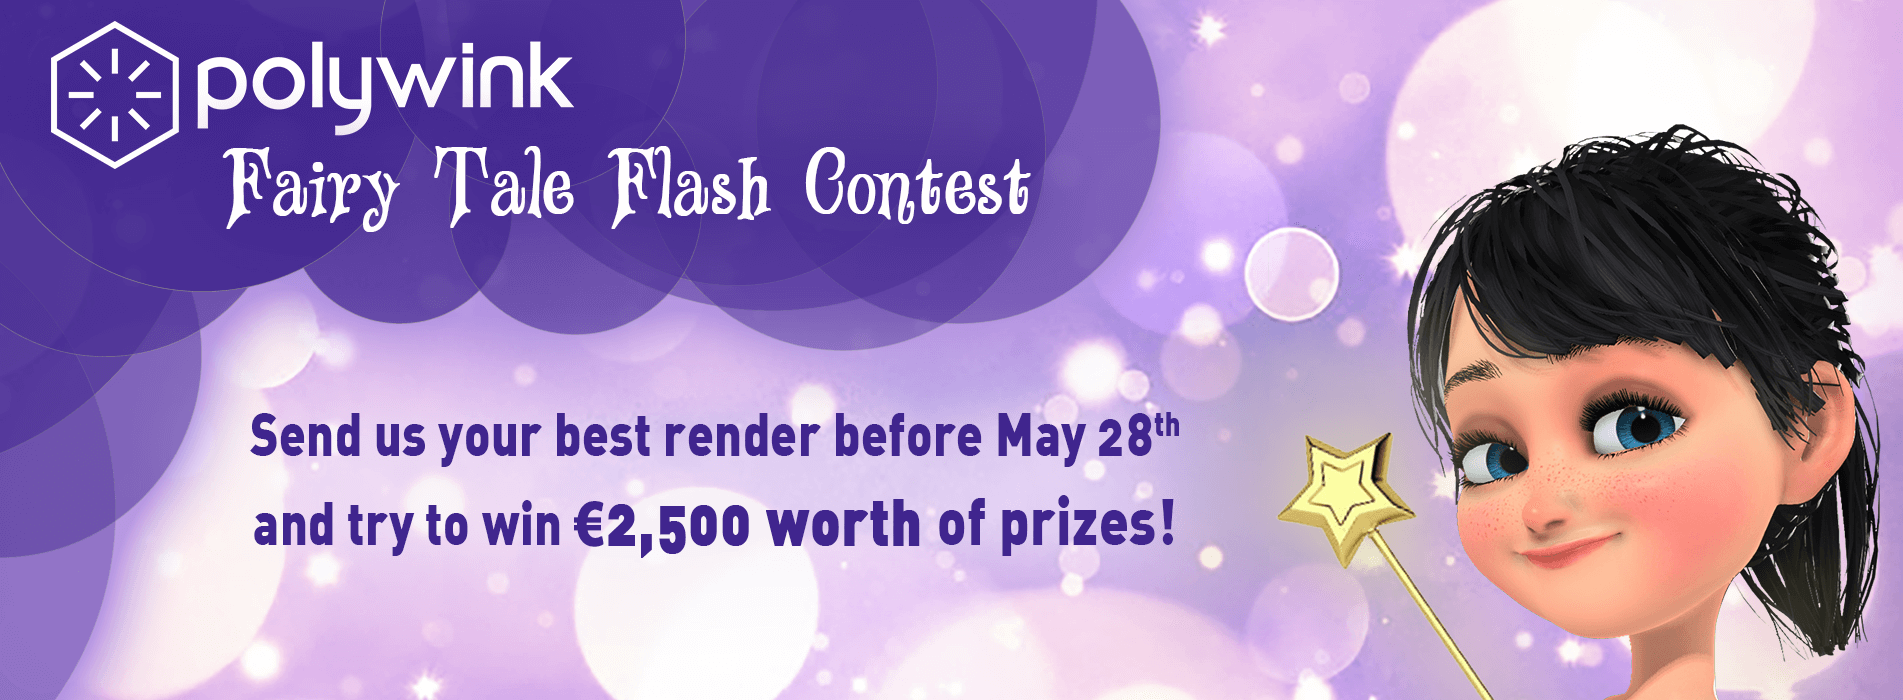 Polywink Flash Contest #1 - Fairy Tale